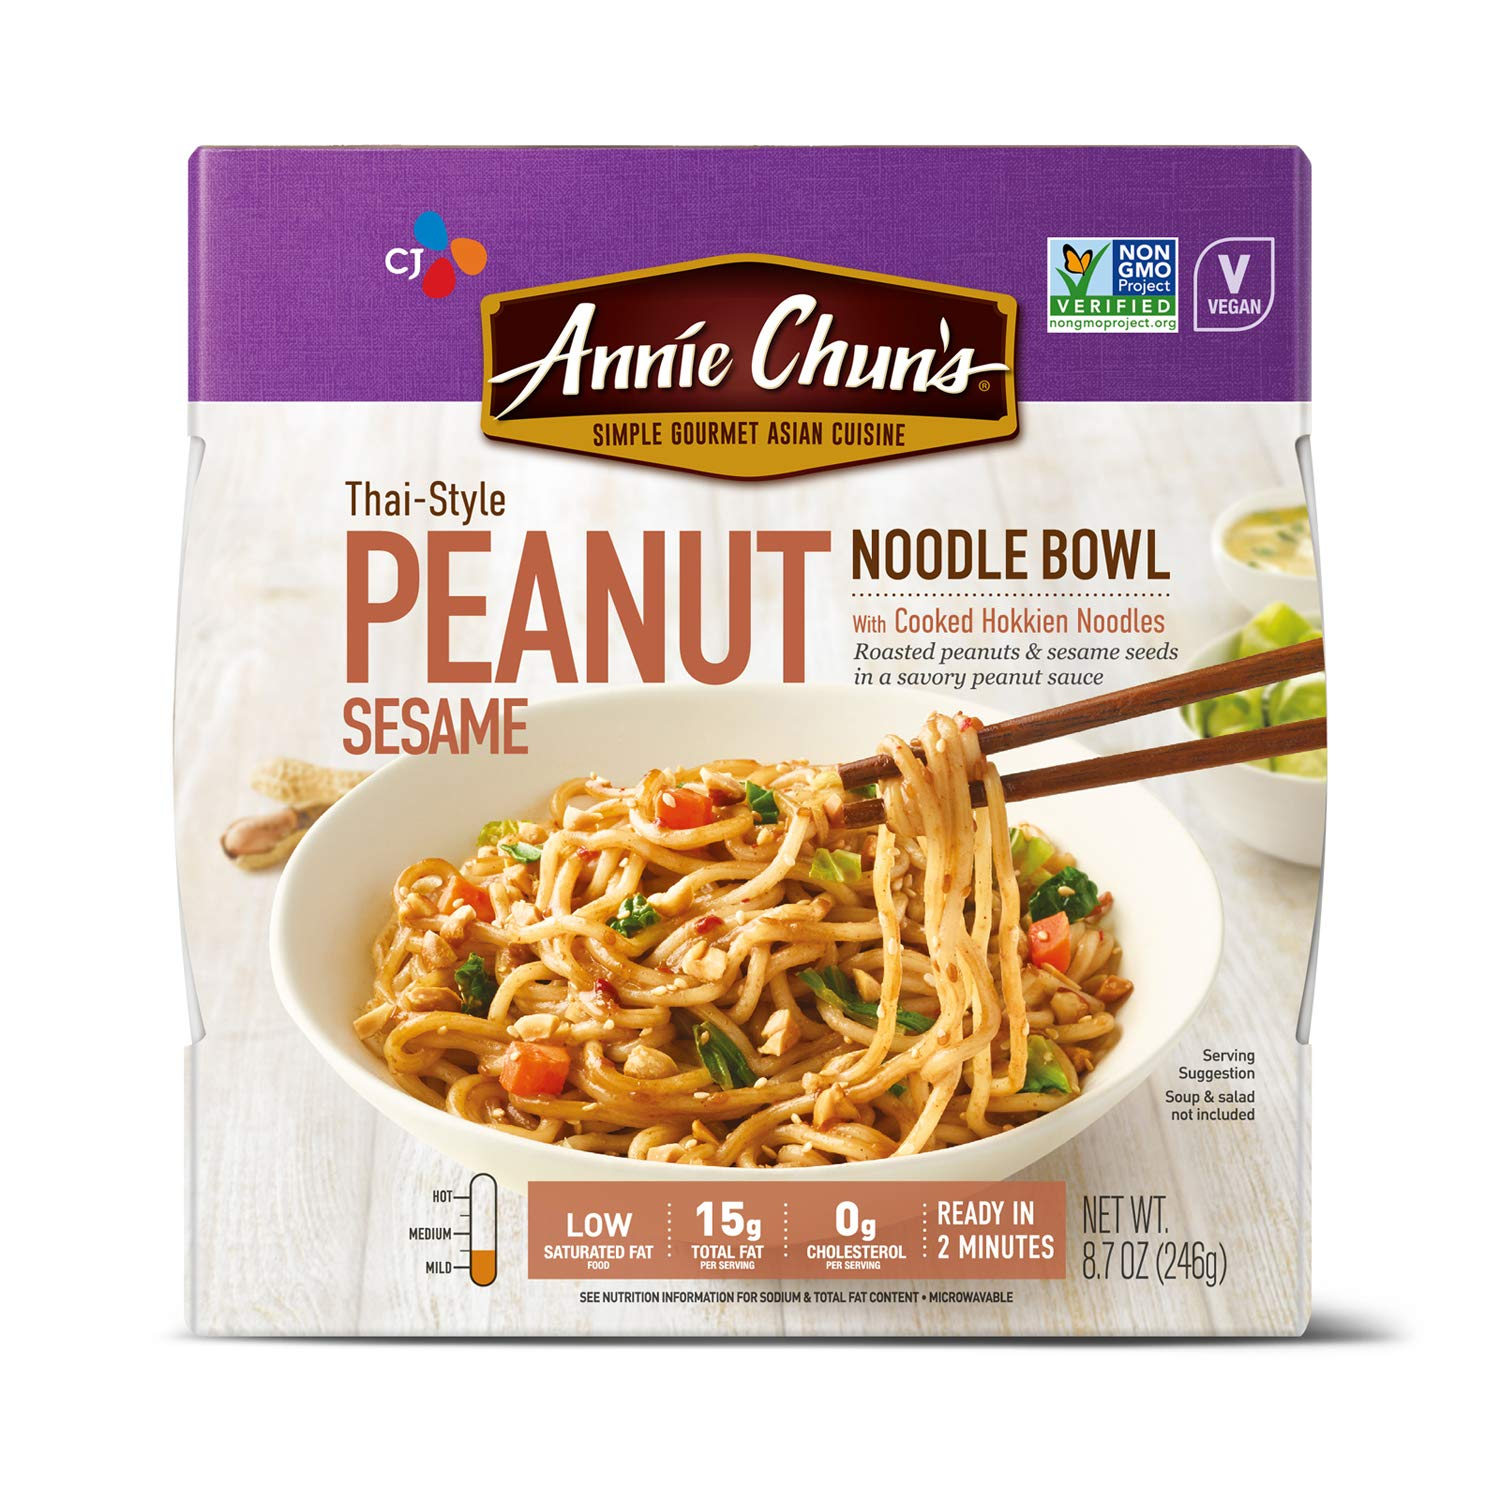 Annie Chun's Peanut Sesame Noodle Bowl | Non-GMO, Vegan, Shelf-Stable, 8.7 Ounce (Pack of 6) | Thai-Style Microwaveable Ready Meal